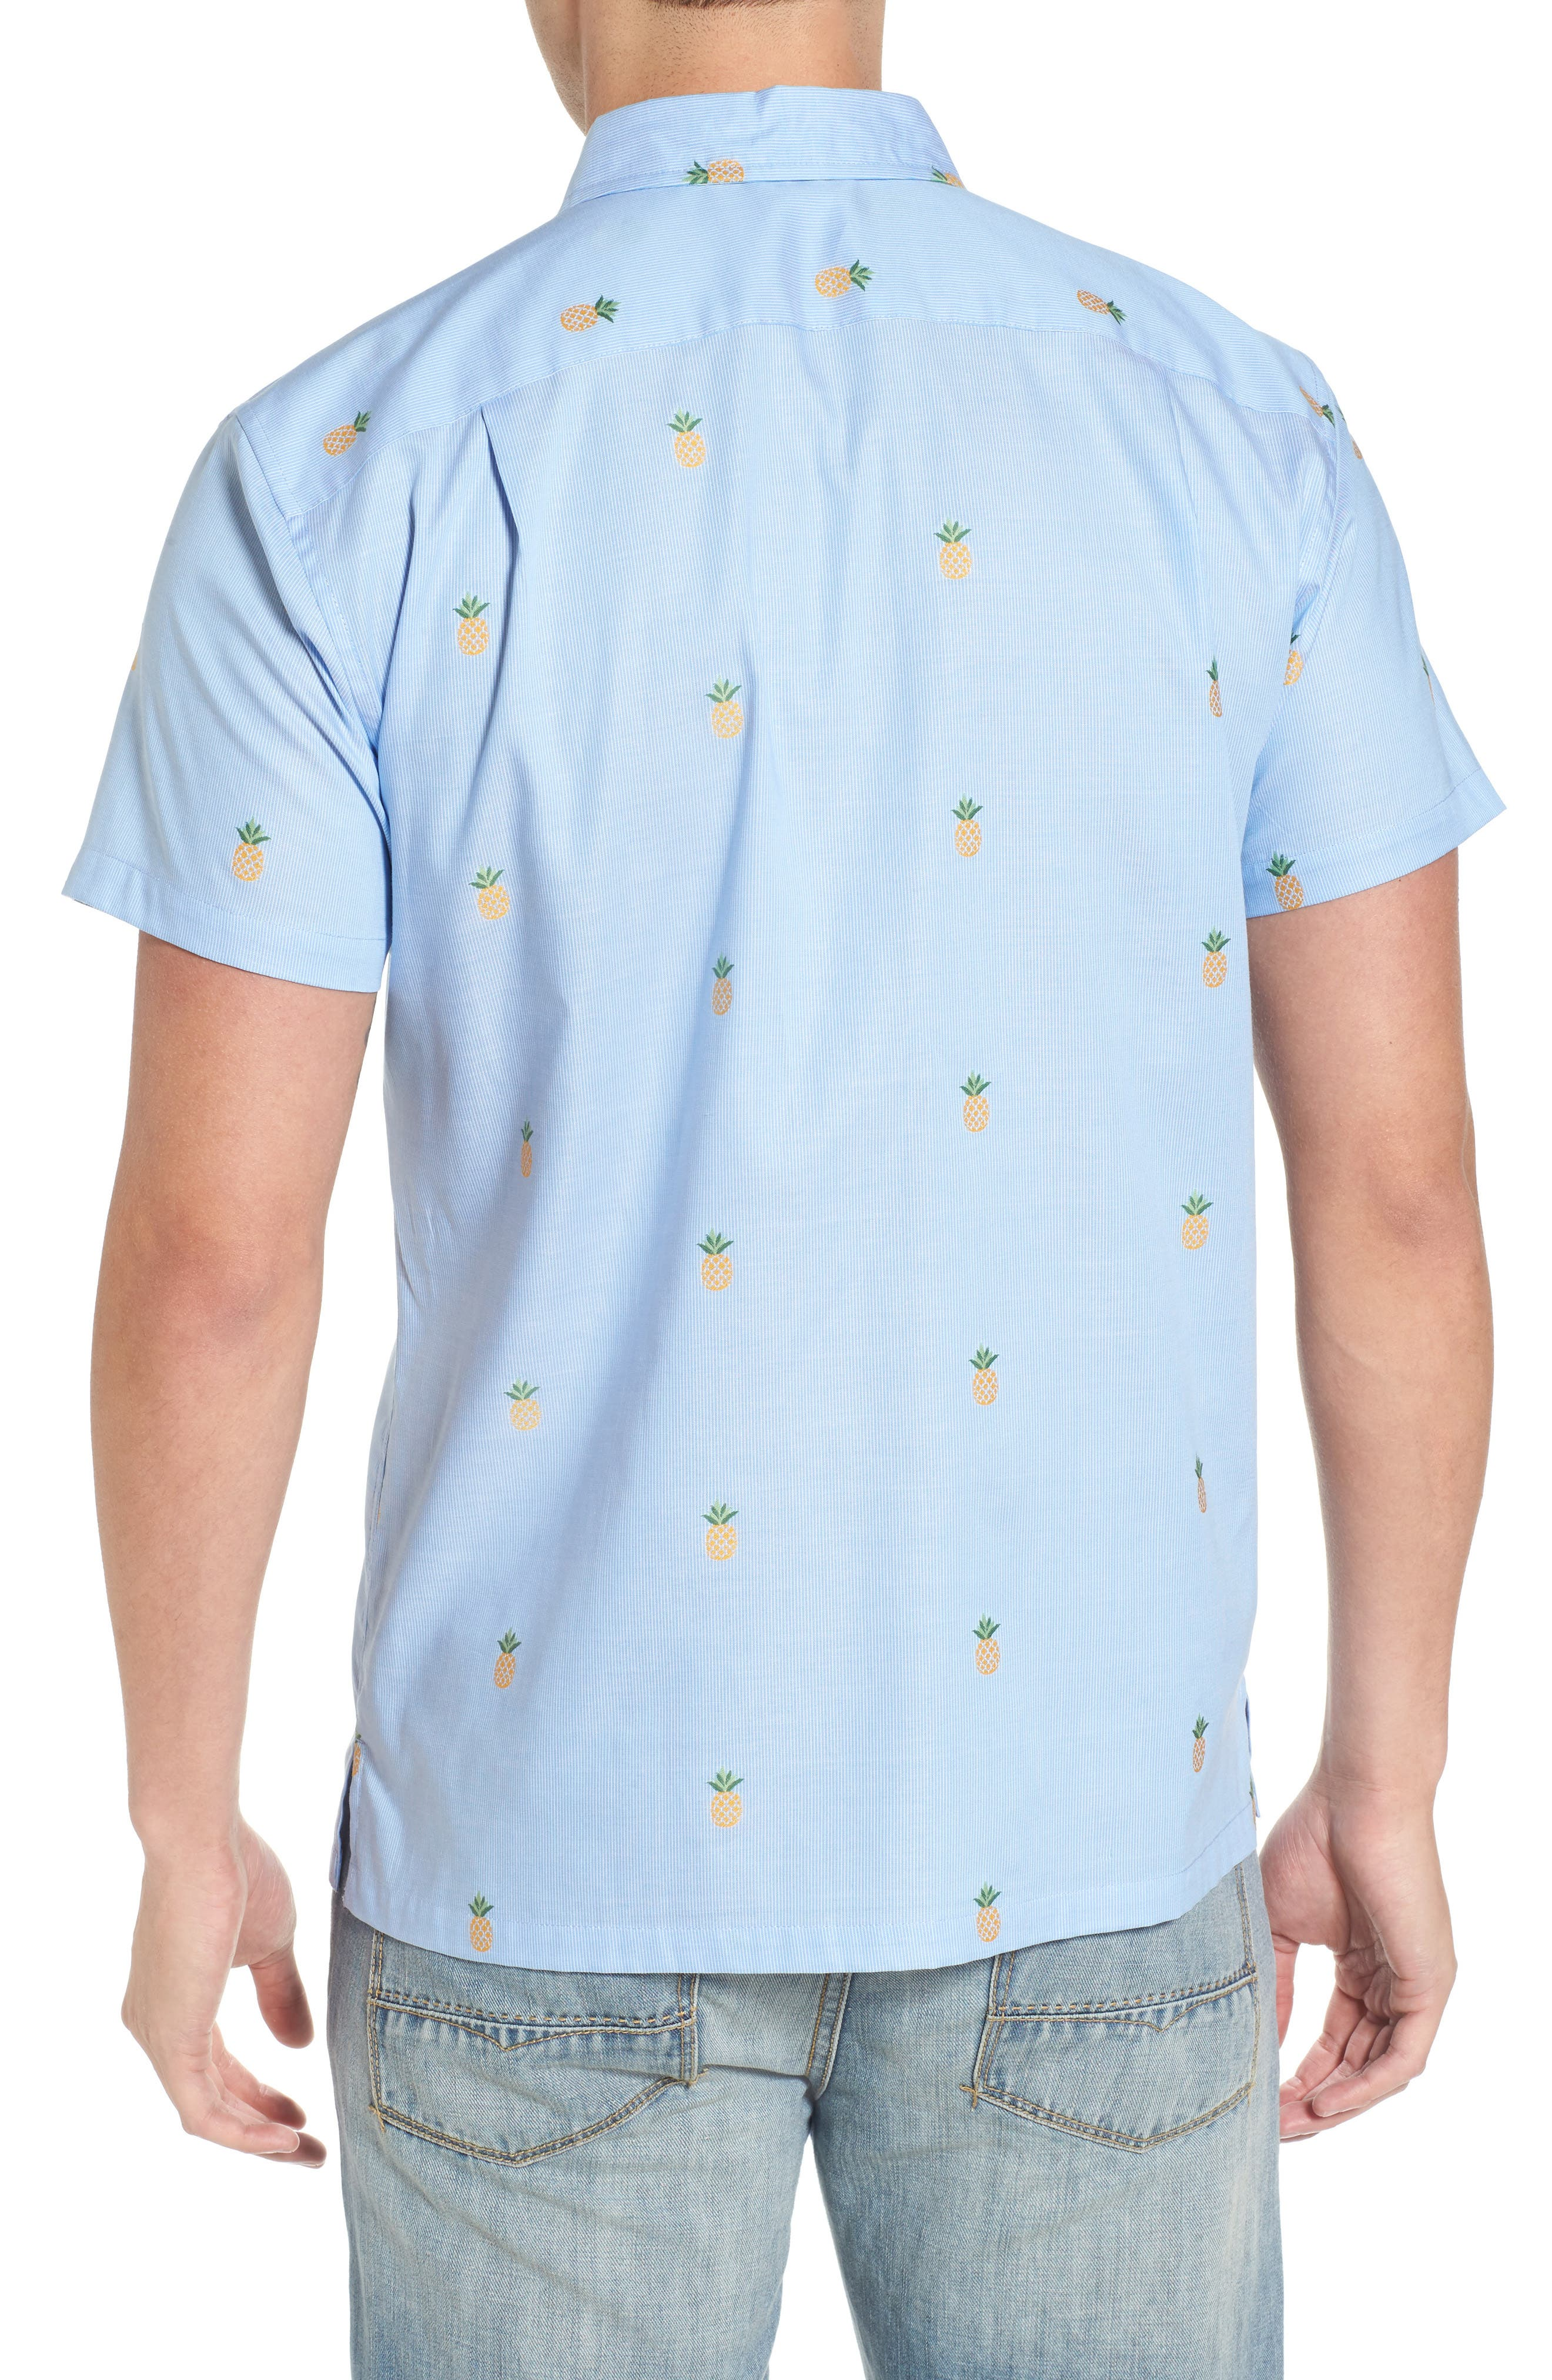 Dole 'N' Row Trim Fit Embroidered Sport Shirt,                             Alternate thumbnail 2, color,                             Blue